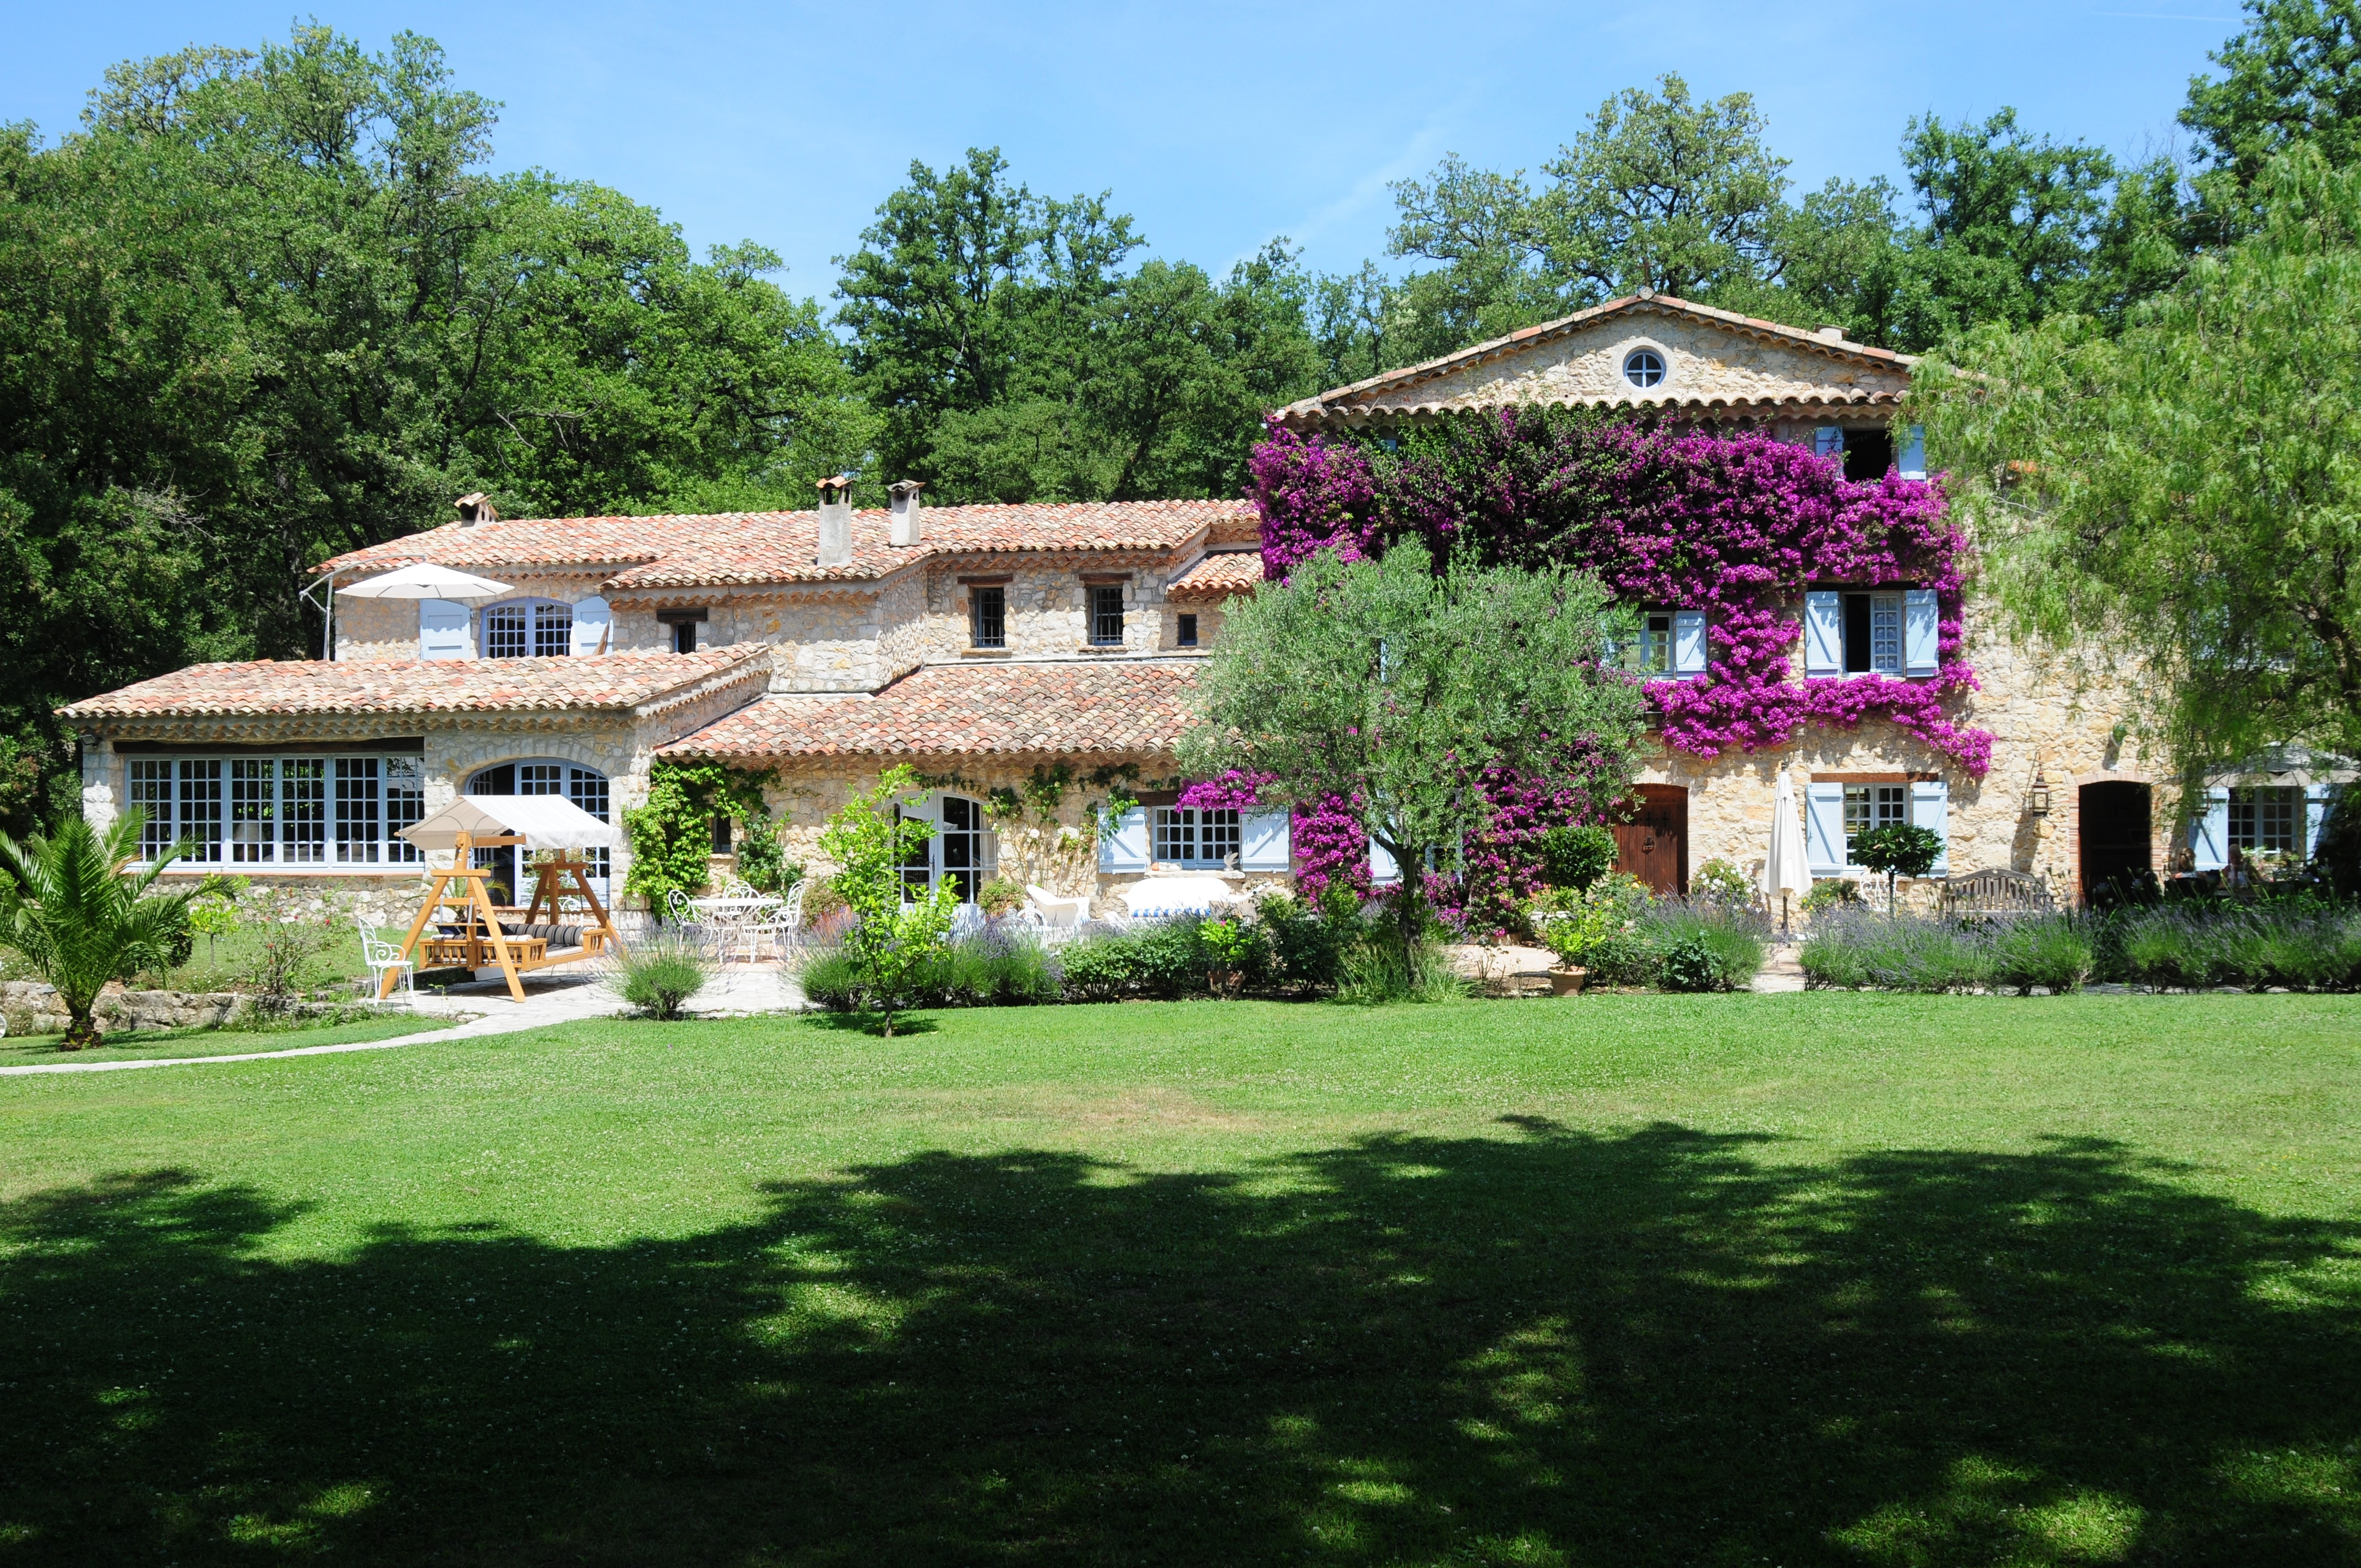 Sell your Villa in the South of France with our Unique Approach